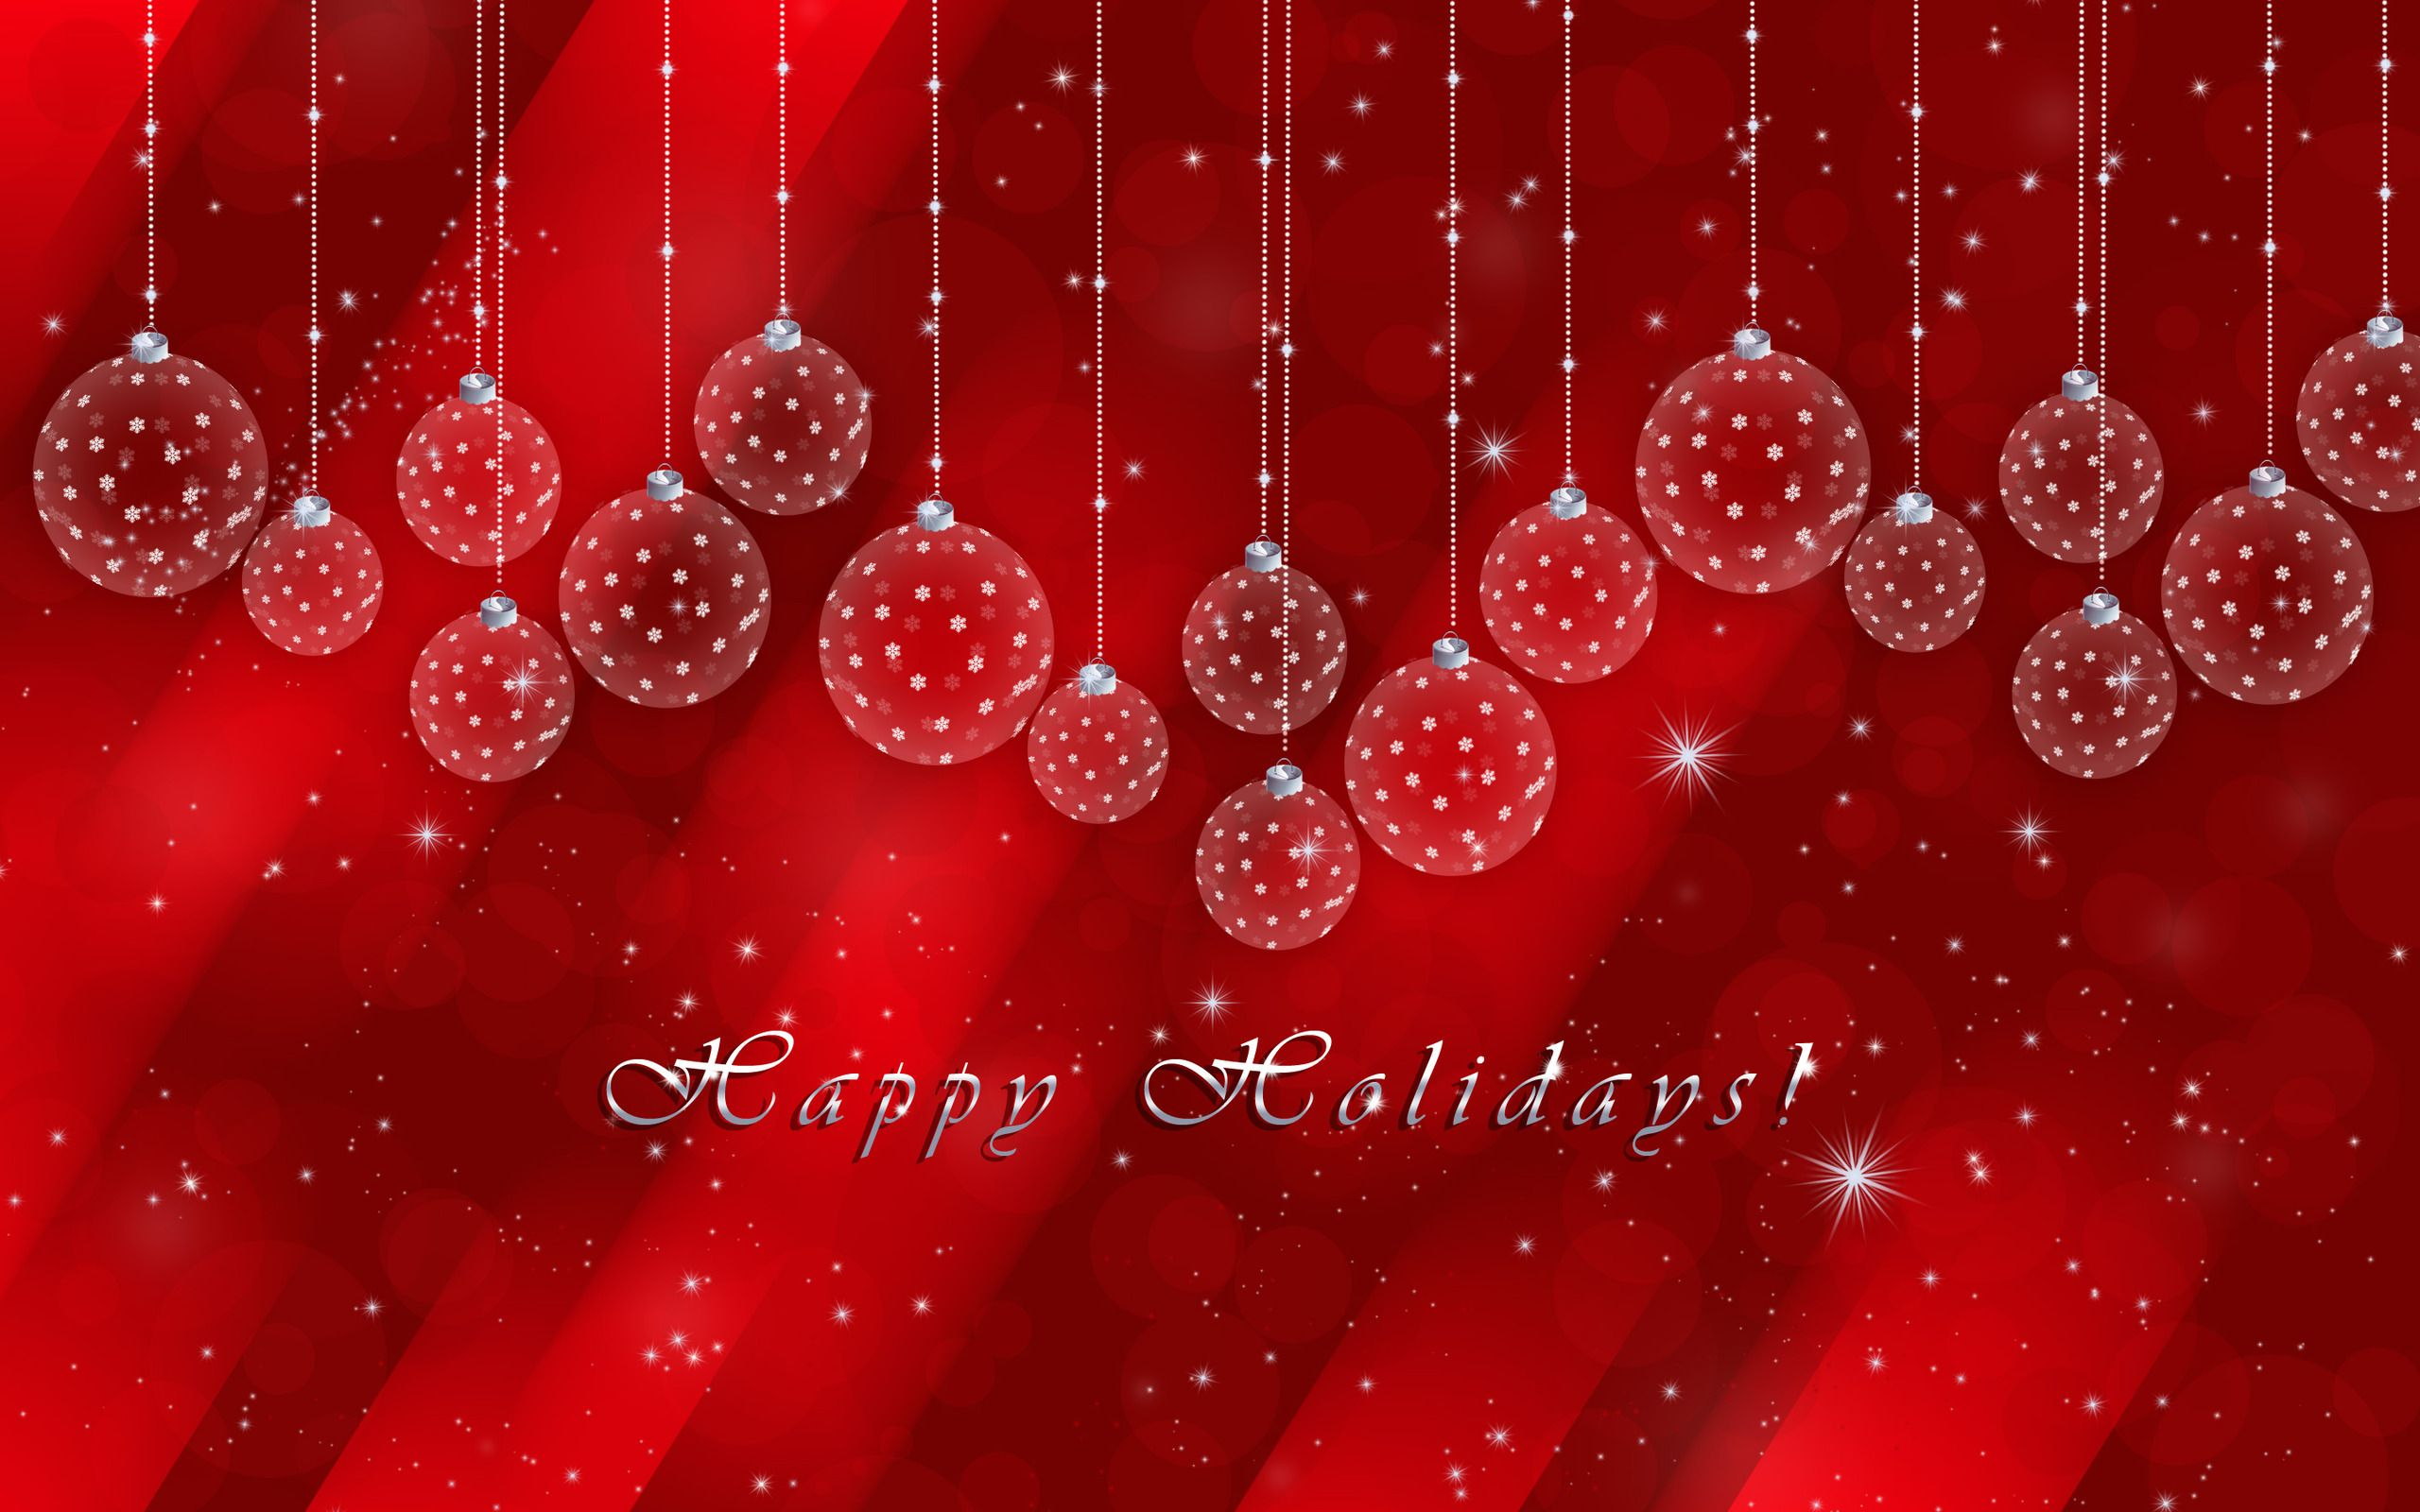 Desktop wallpapers holiday free - Free Holiday Backgrounds For Desktop Hd Images Holiday Collection